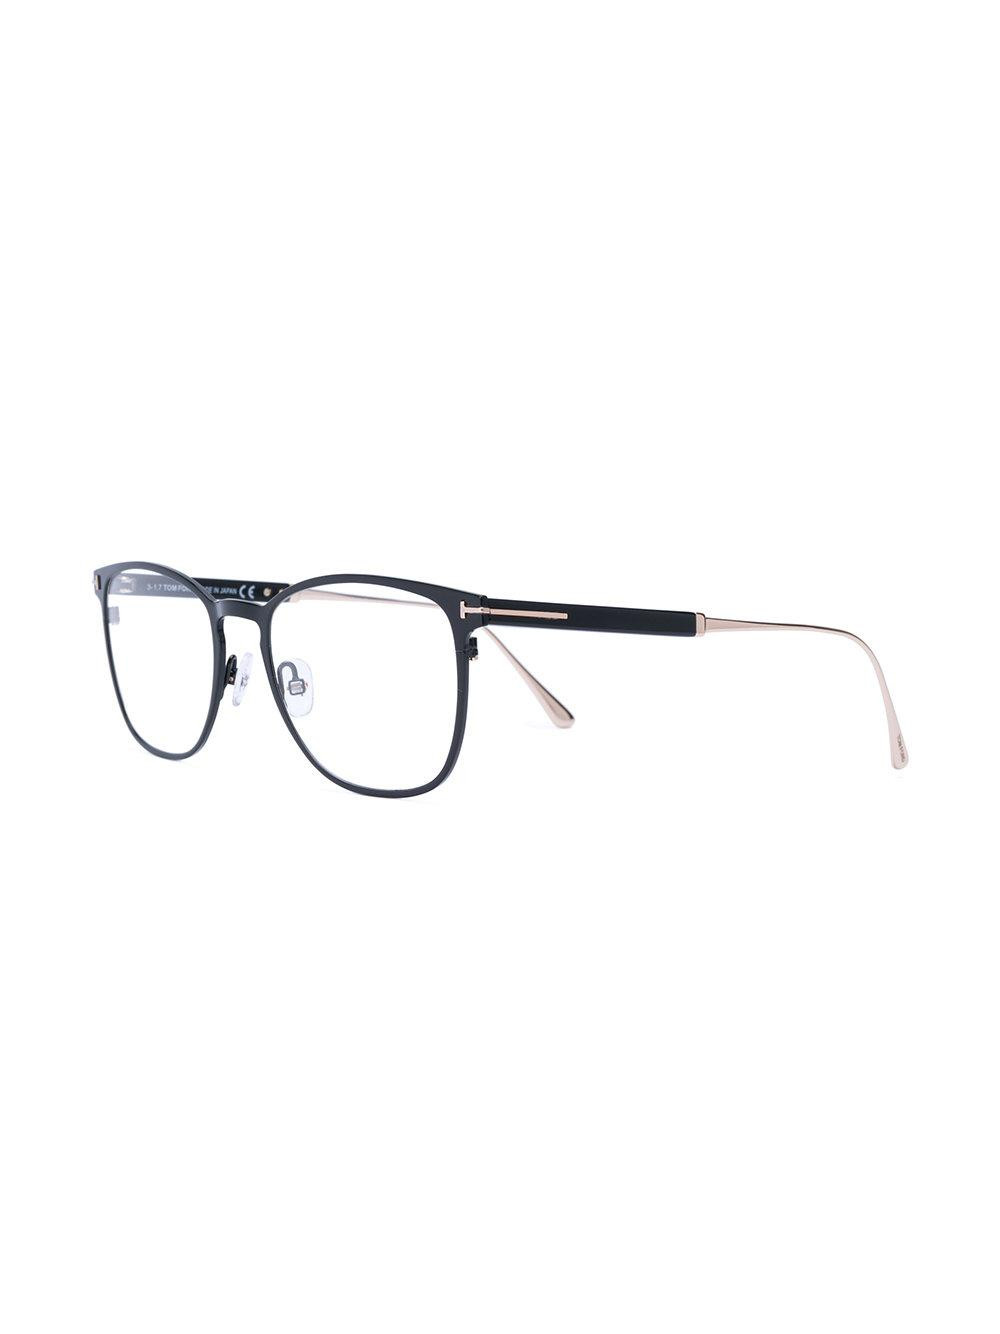 9612ebe13a Tom Ford Round Thin Frame Glasses in Black for Men - Lyst